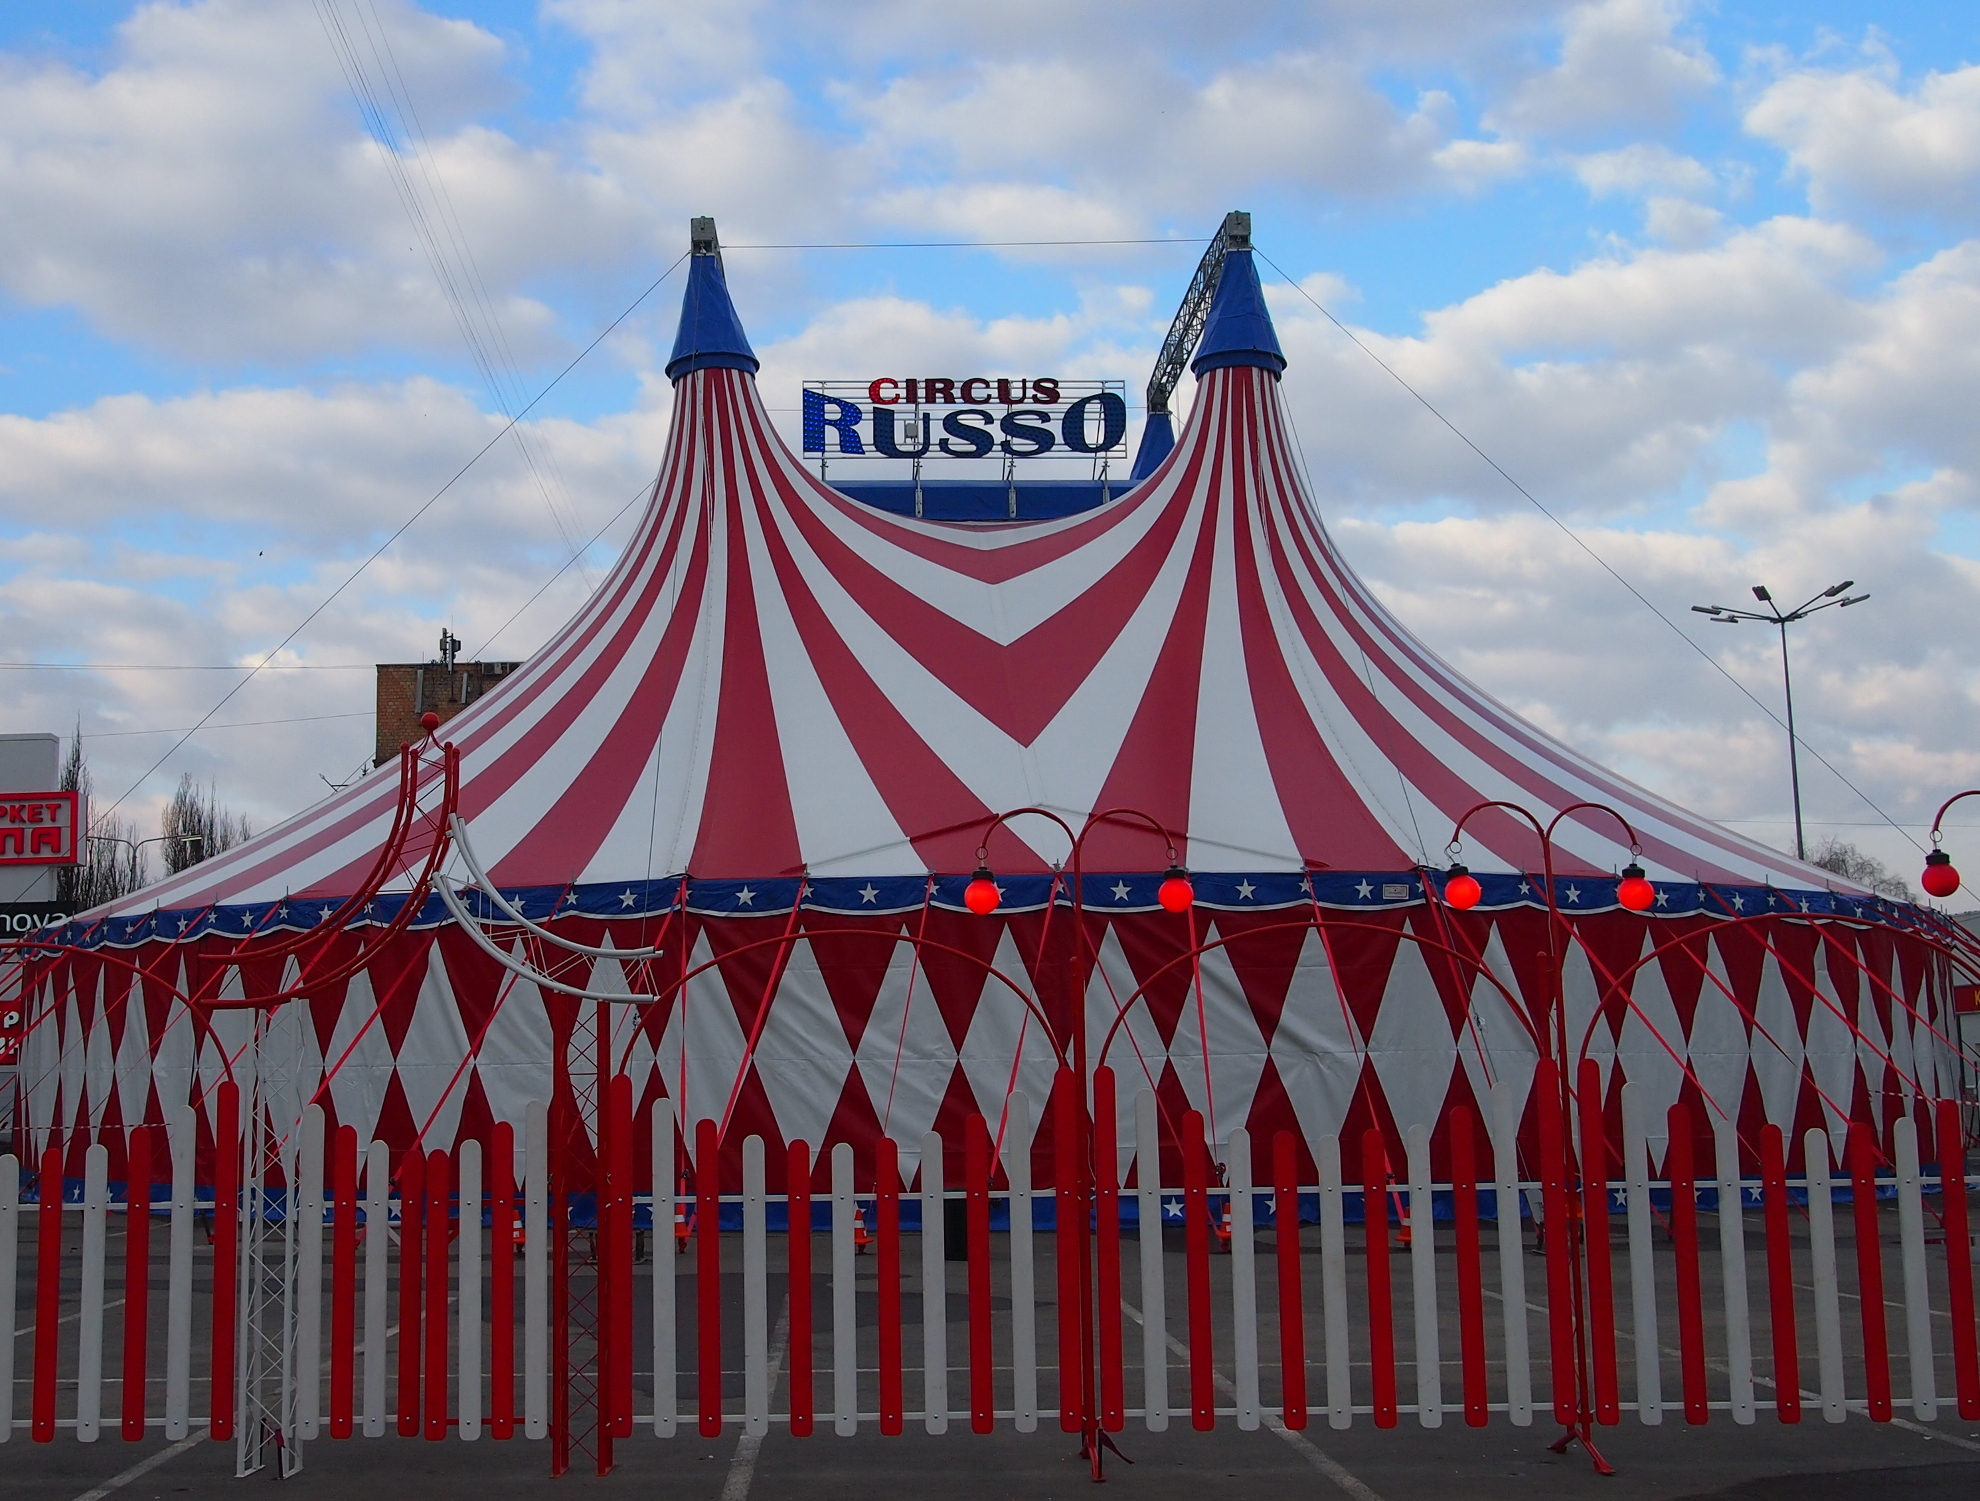 Circus Russo